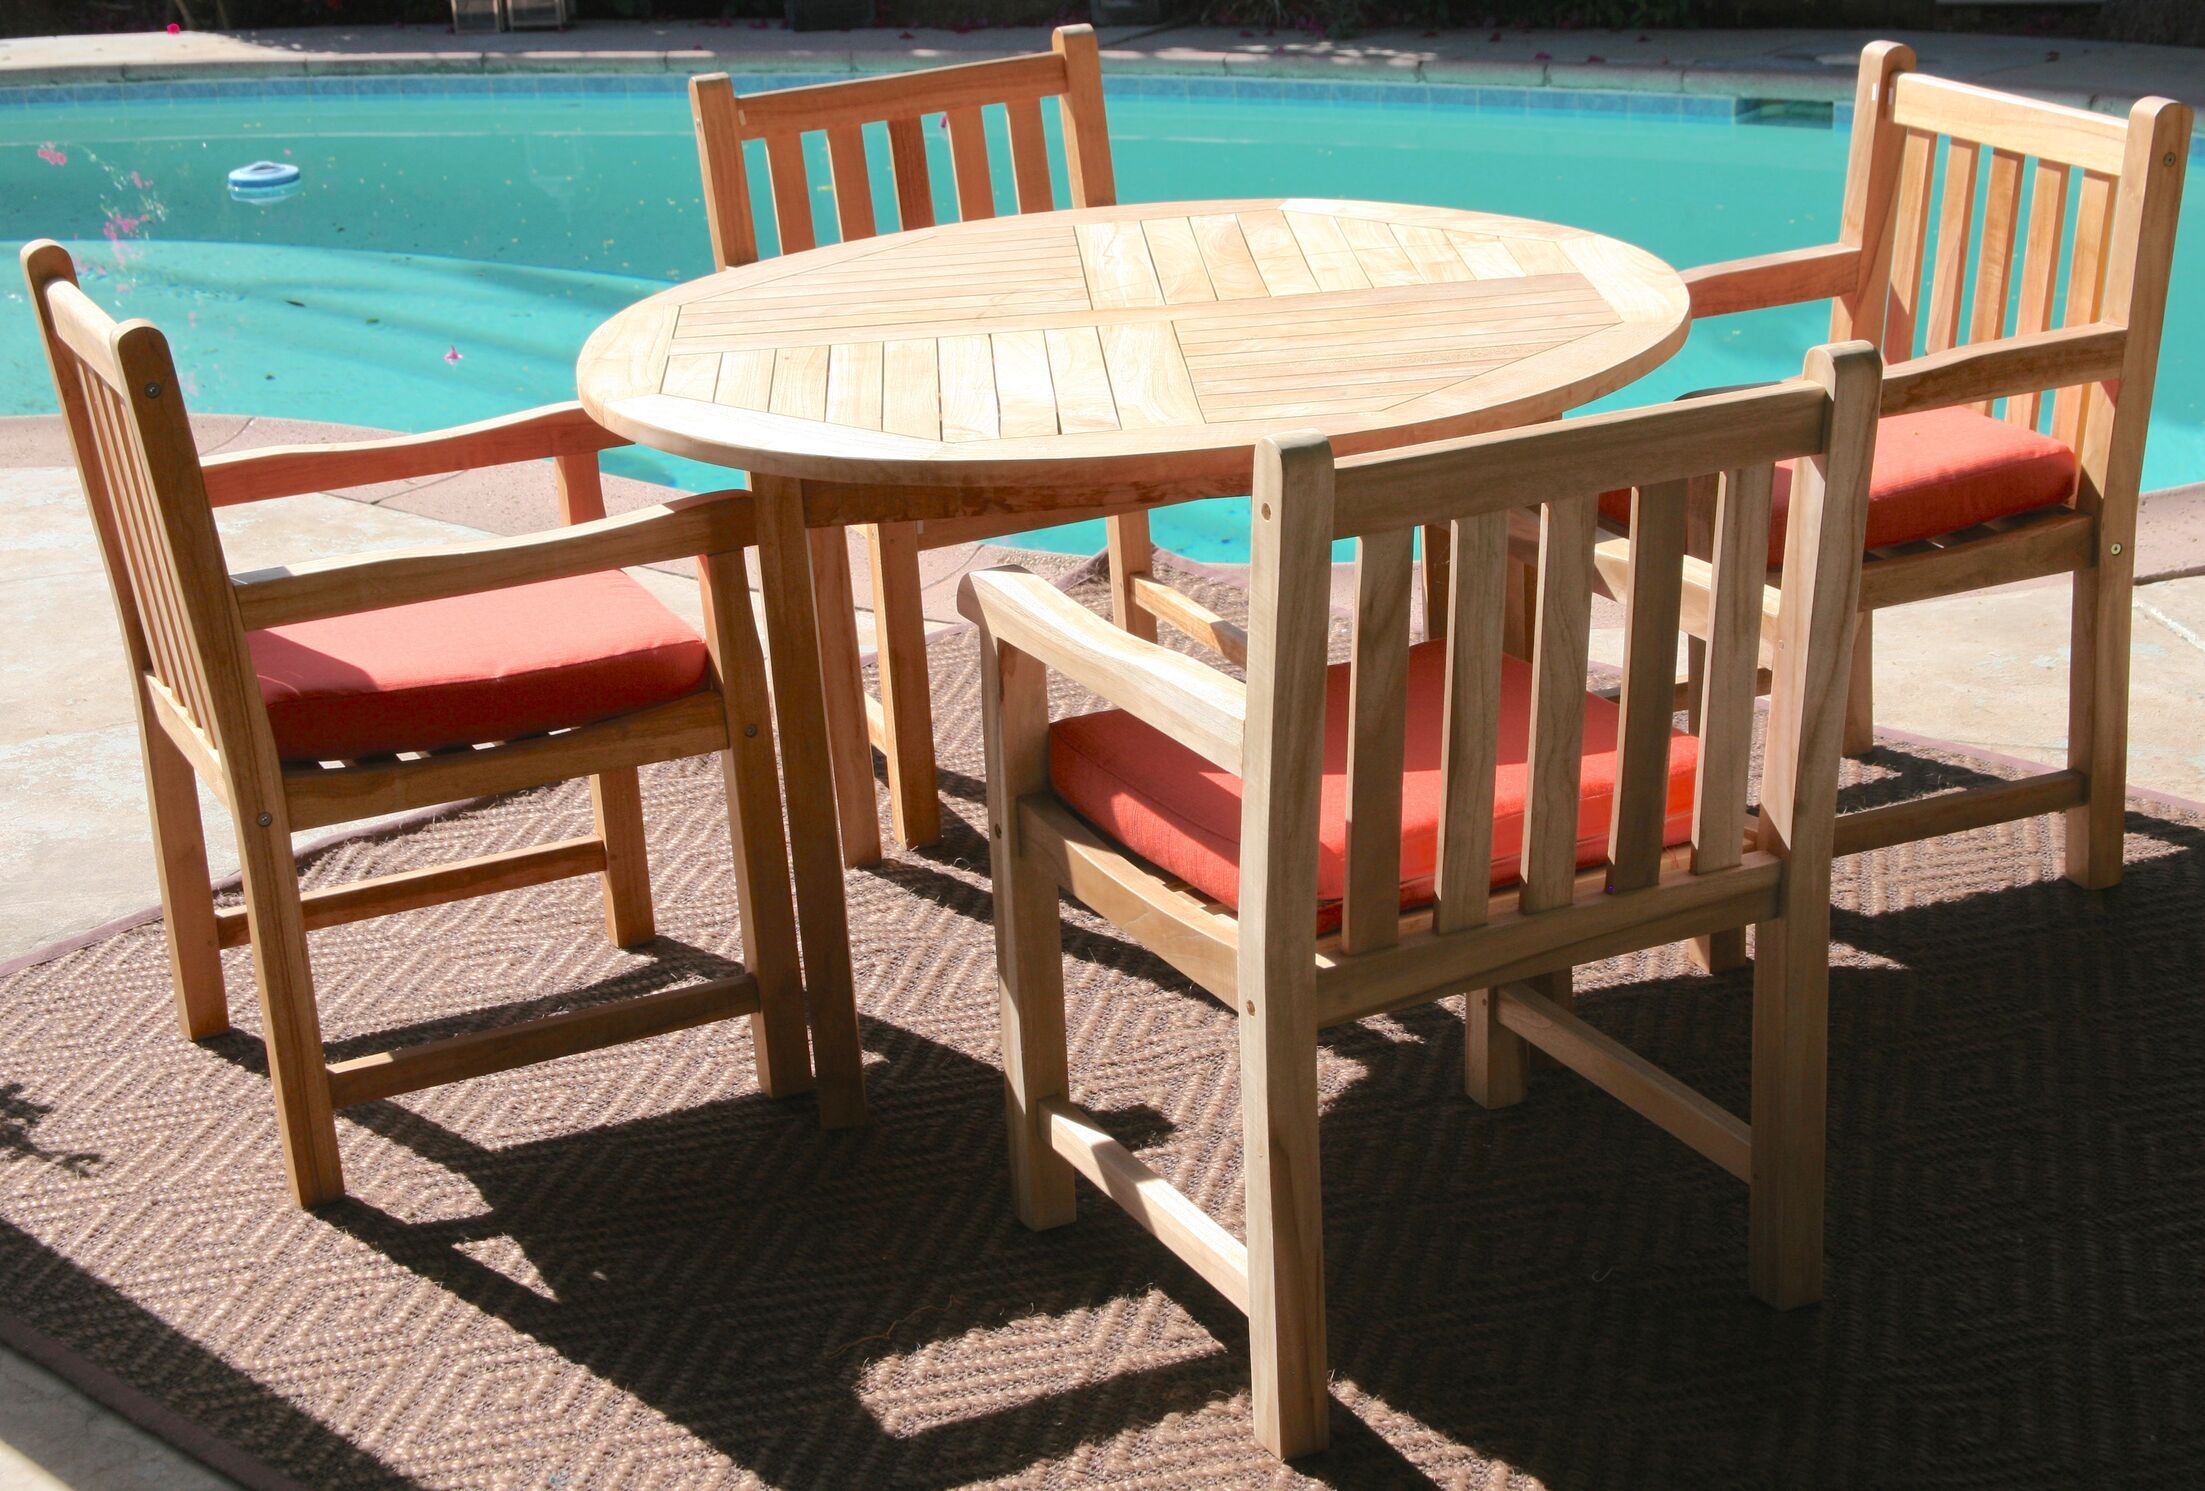 Waterford 5 Piece Teak Dining Set with Sunbrella Cushions Cushion Color: Natural